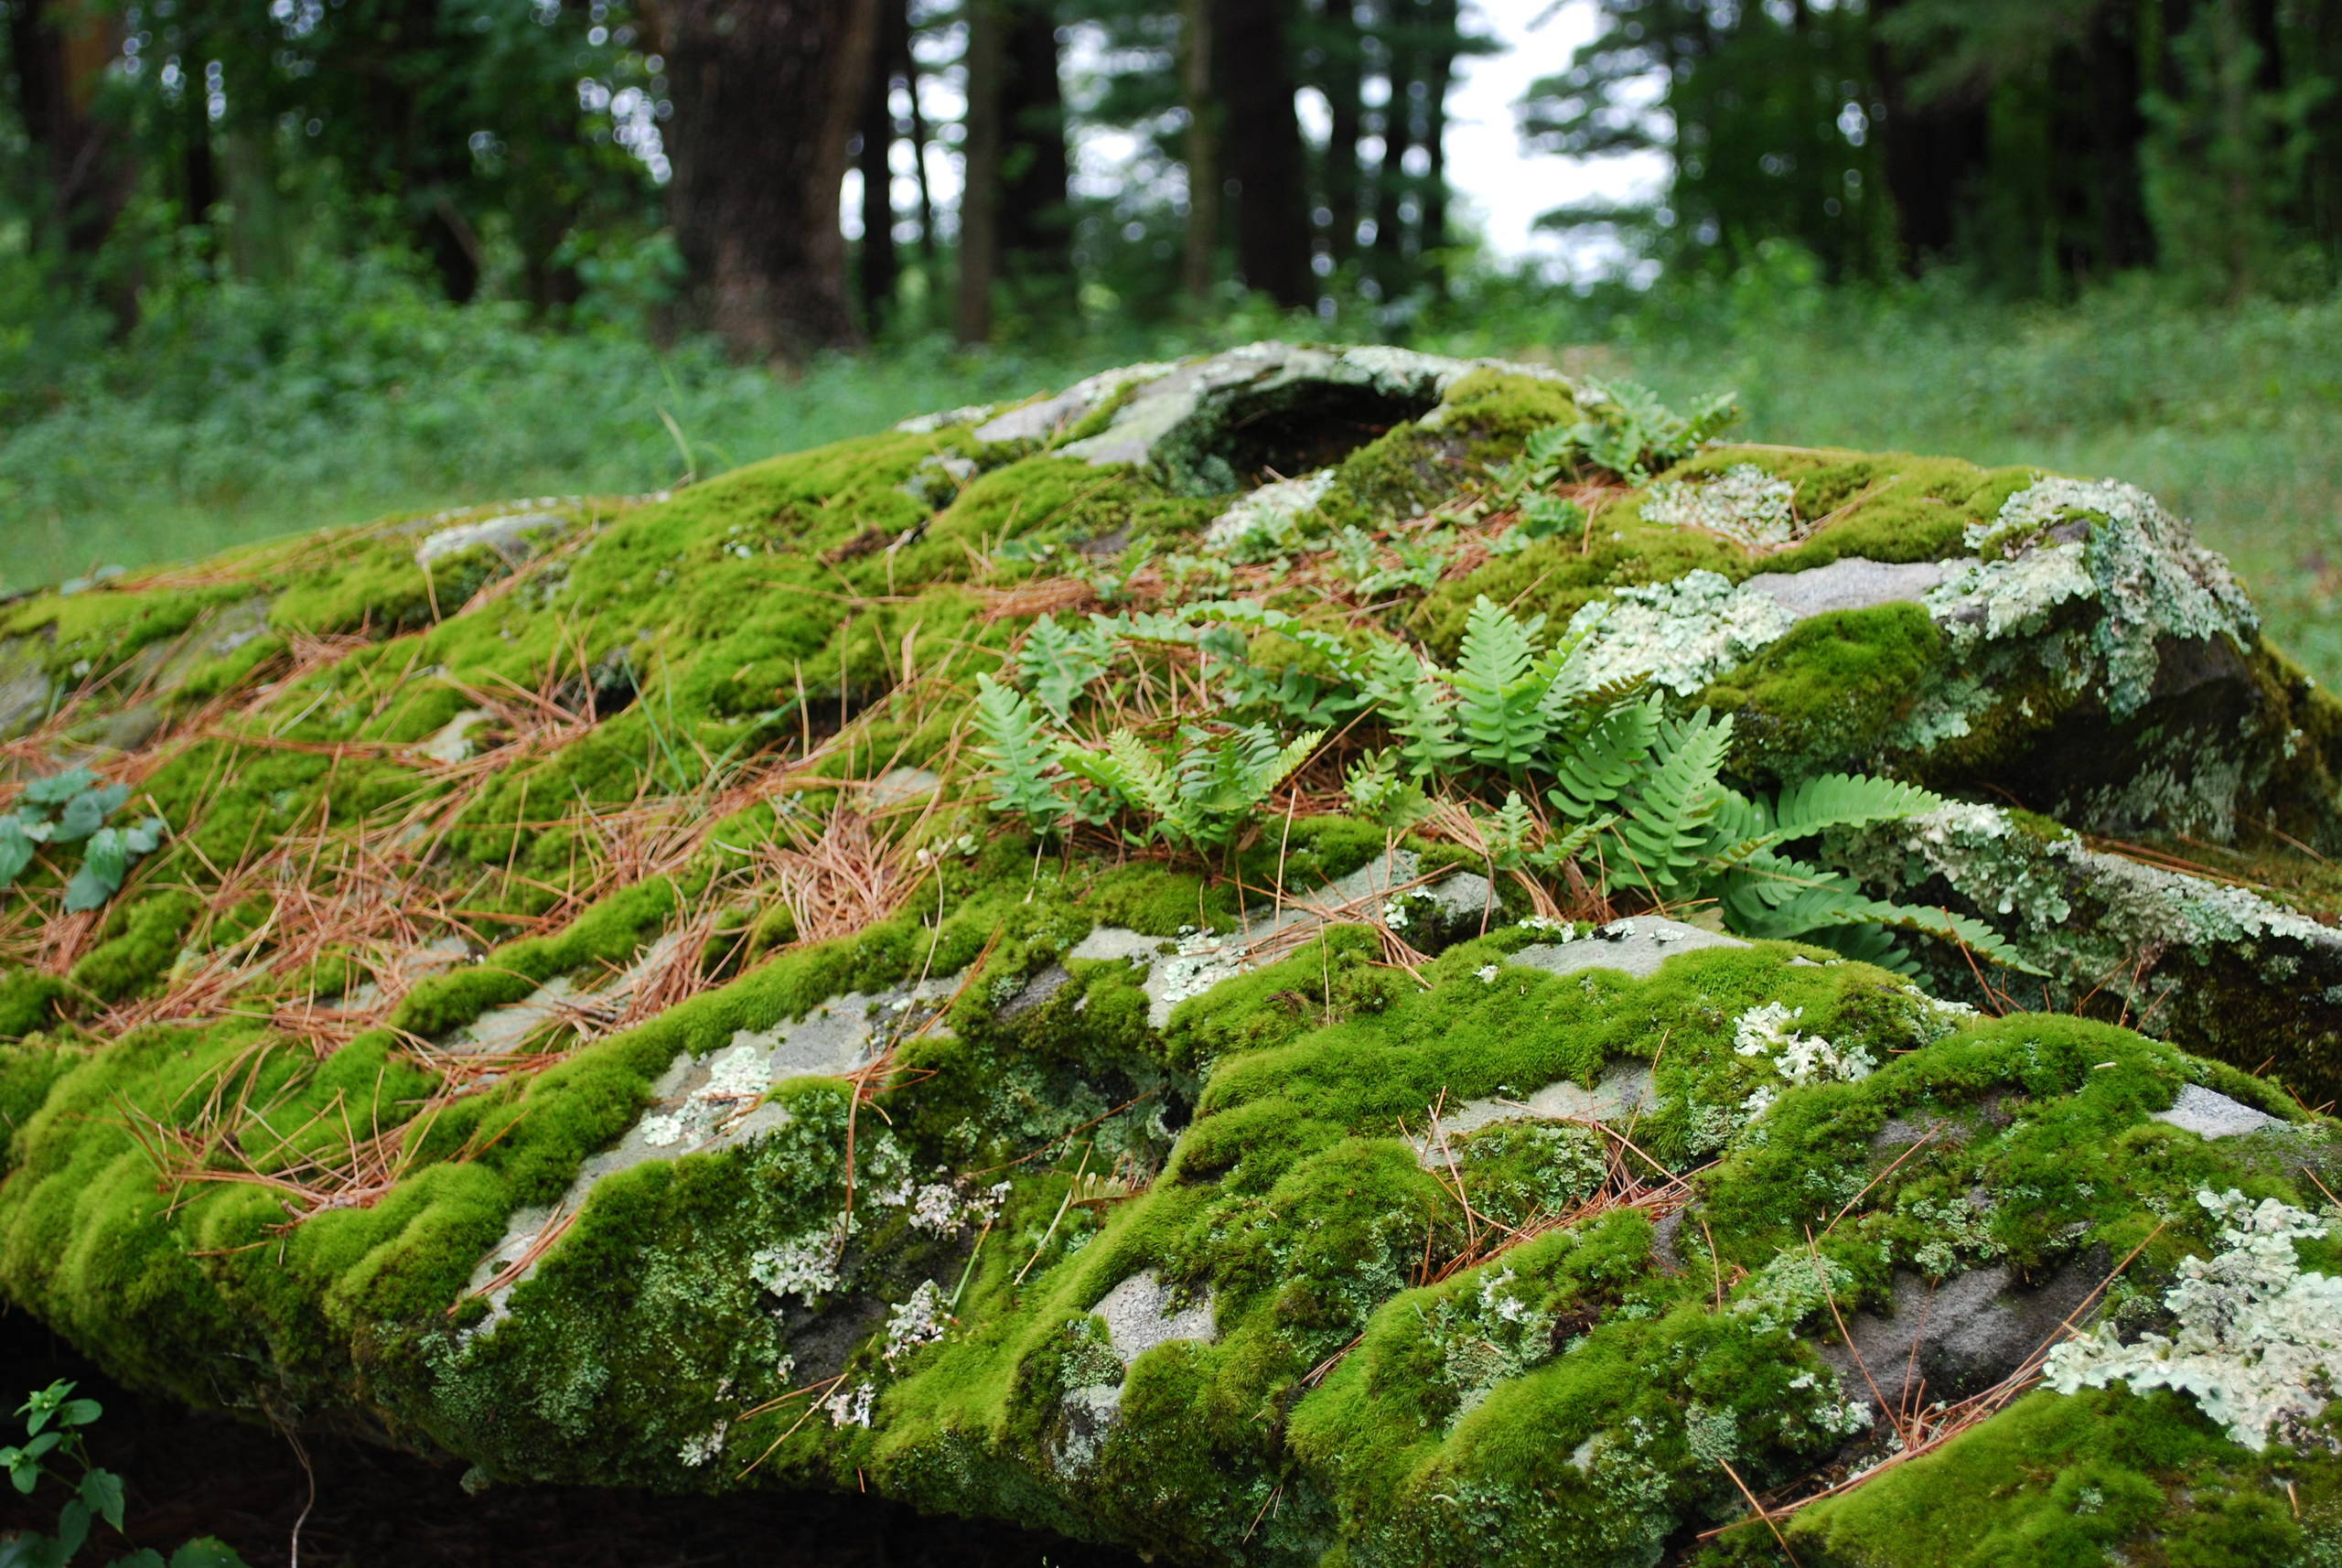 Boulder planted with ferns and moss.